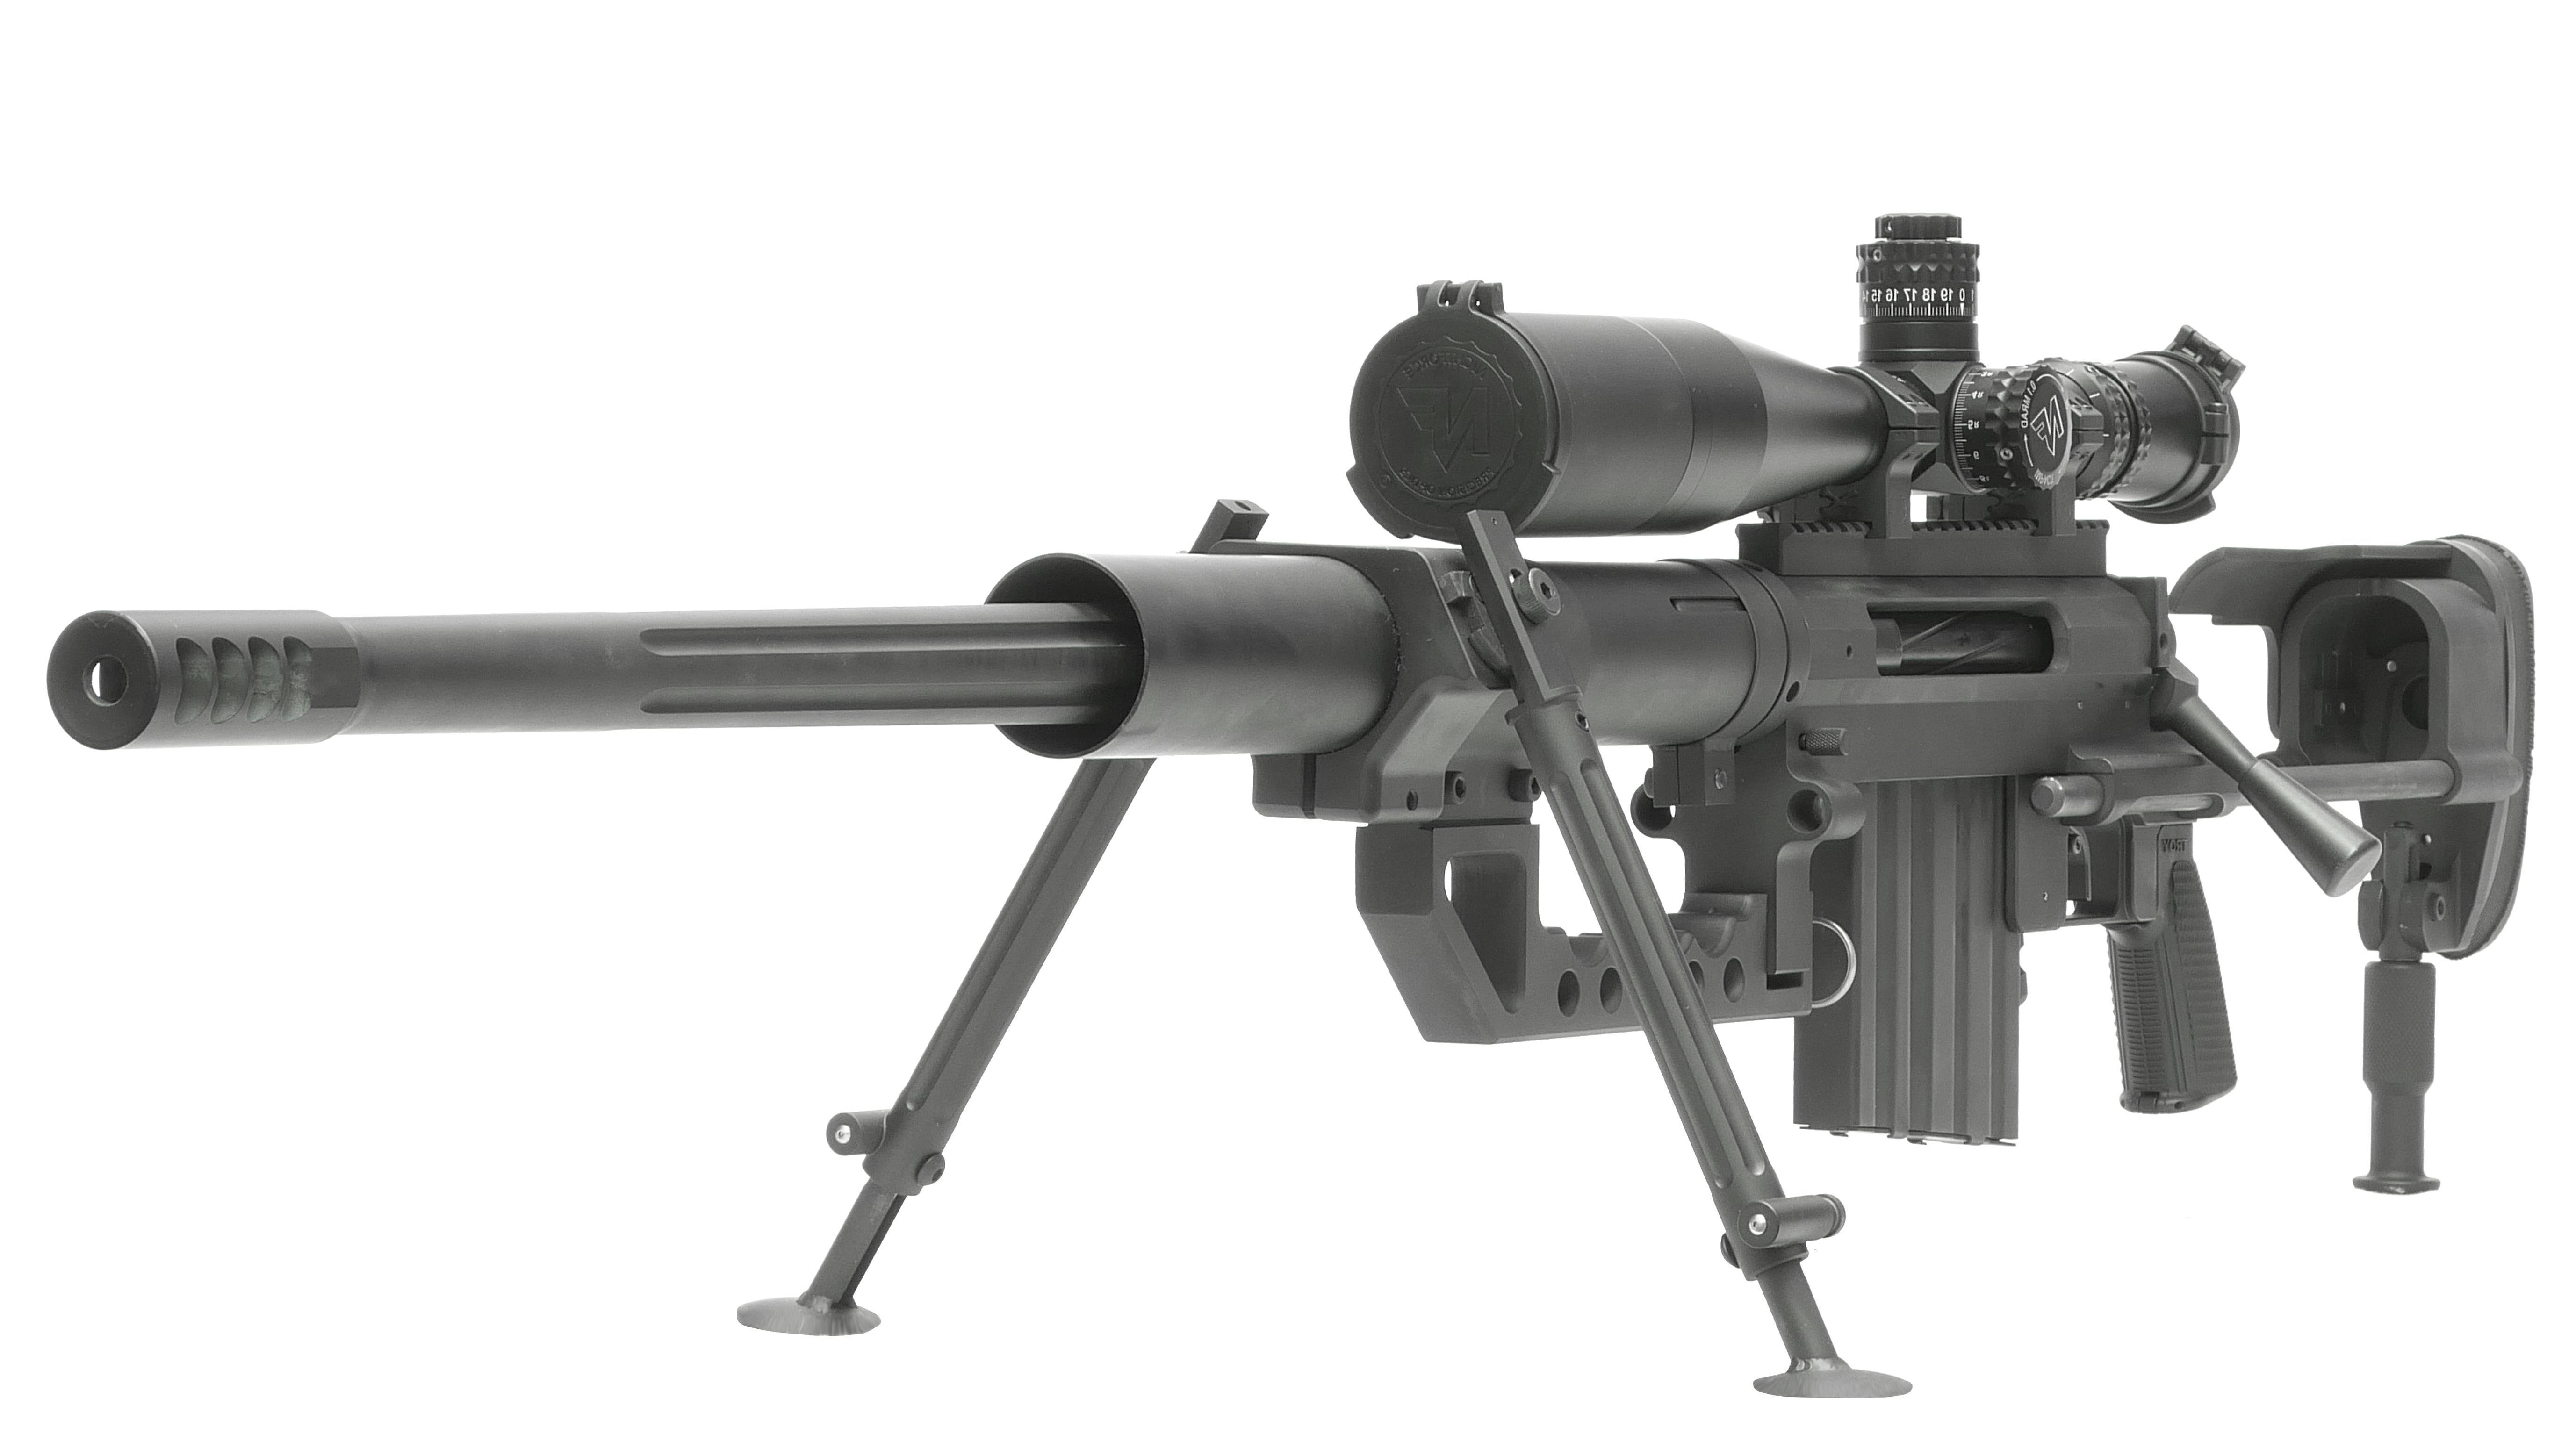 sniper rifle for sale